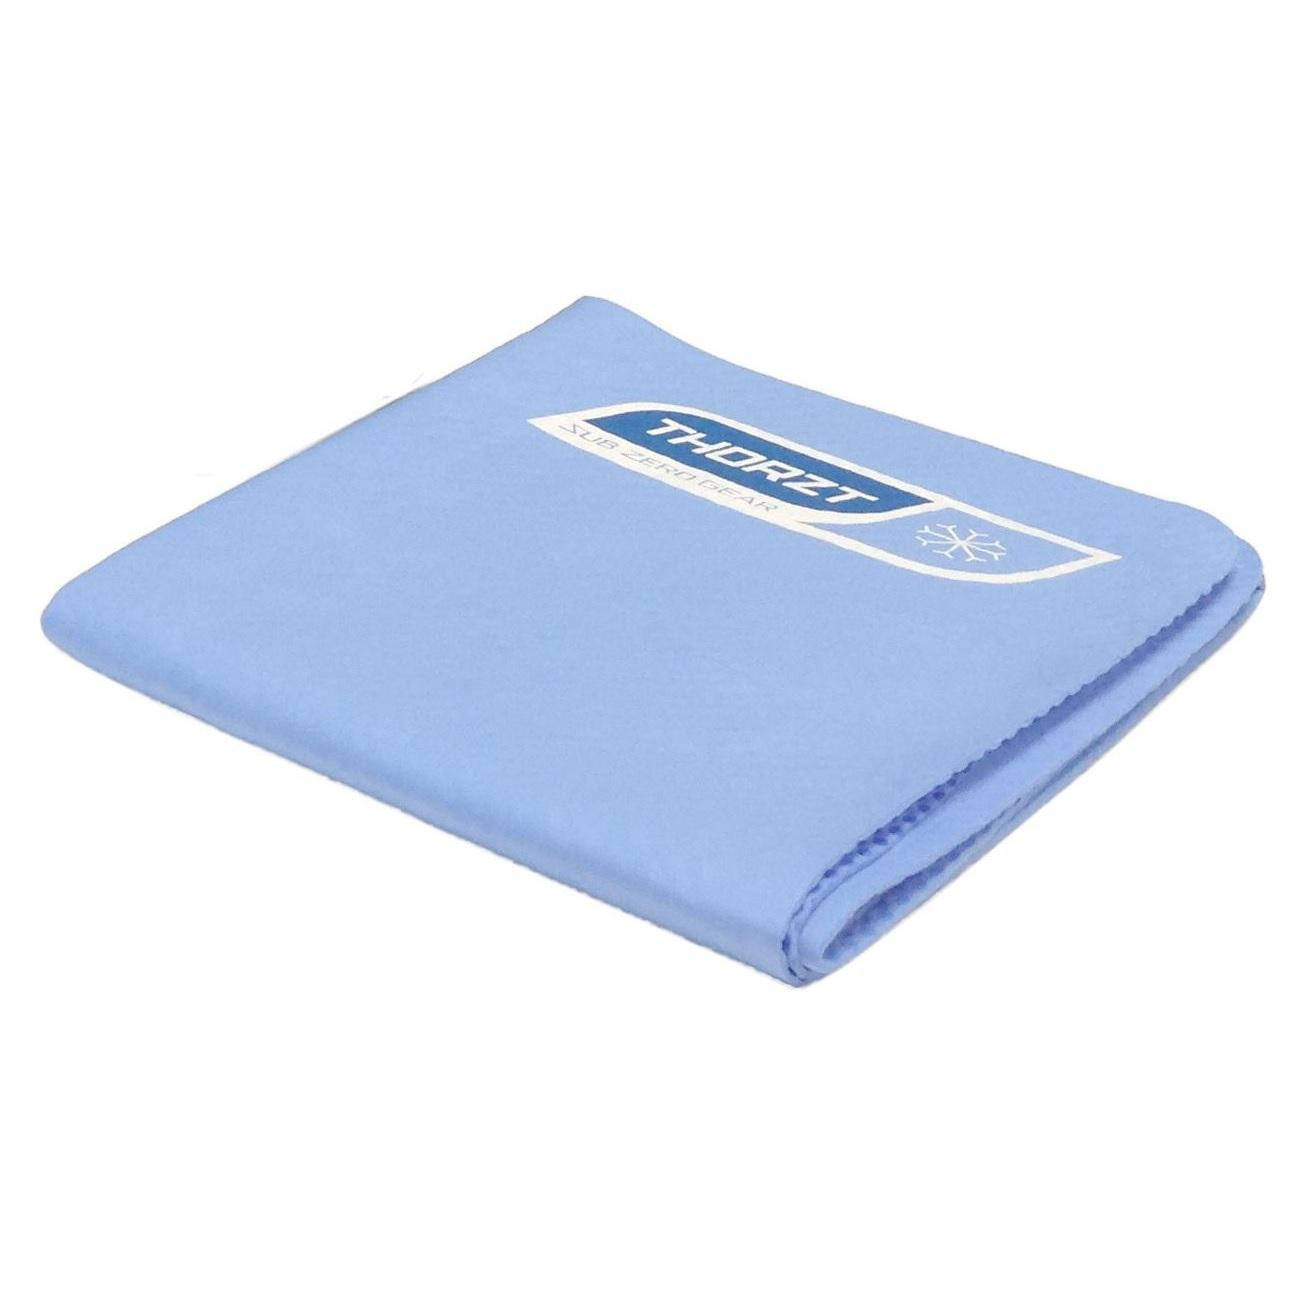 THORZT Chill Skinz Cooling Towel